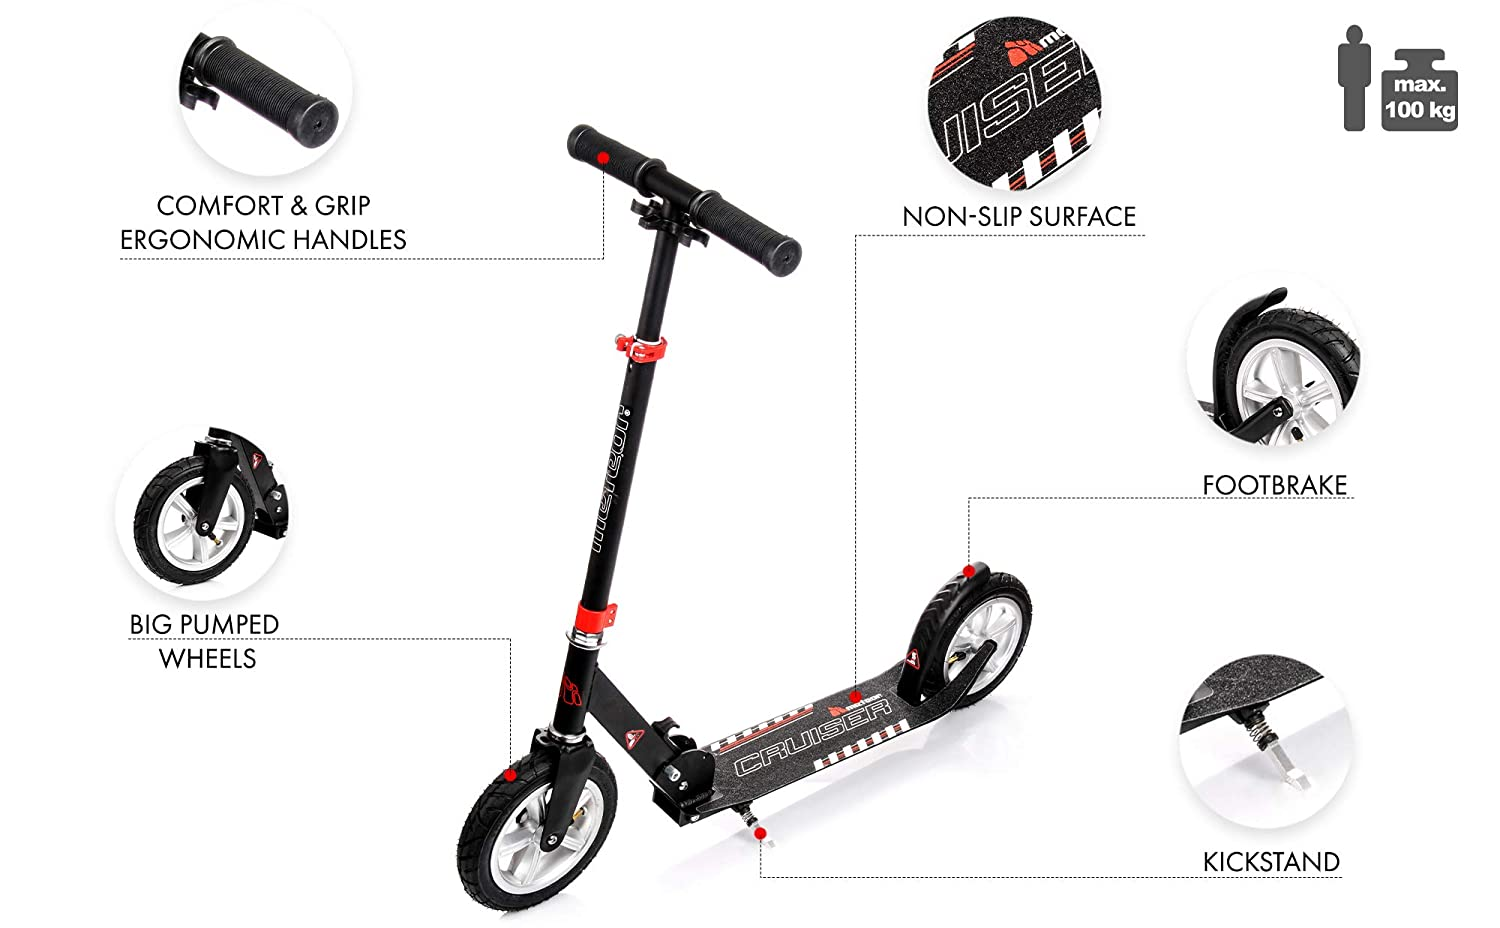 meteor Kick Scooter Mobility Folding Scooter Roller Scooter for Adults /& Children Very Durable Up to 100 kg Pumped Scooter City